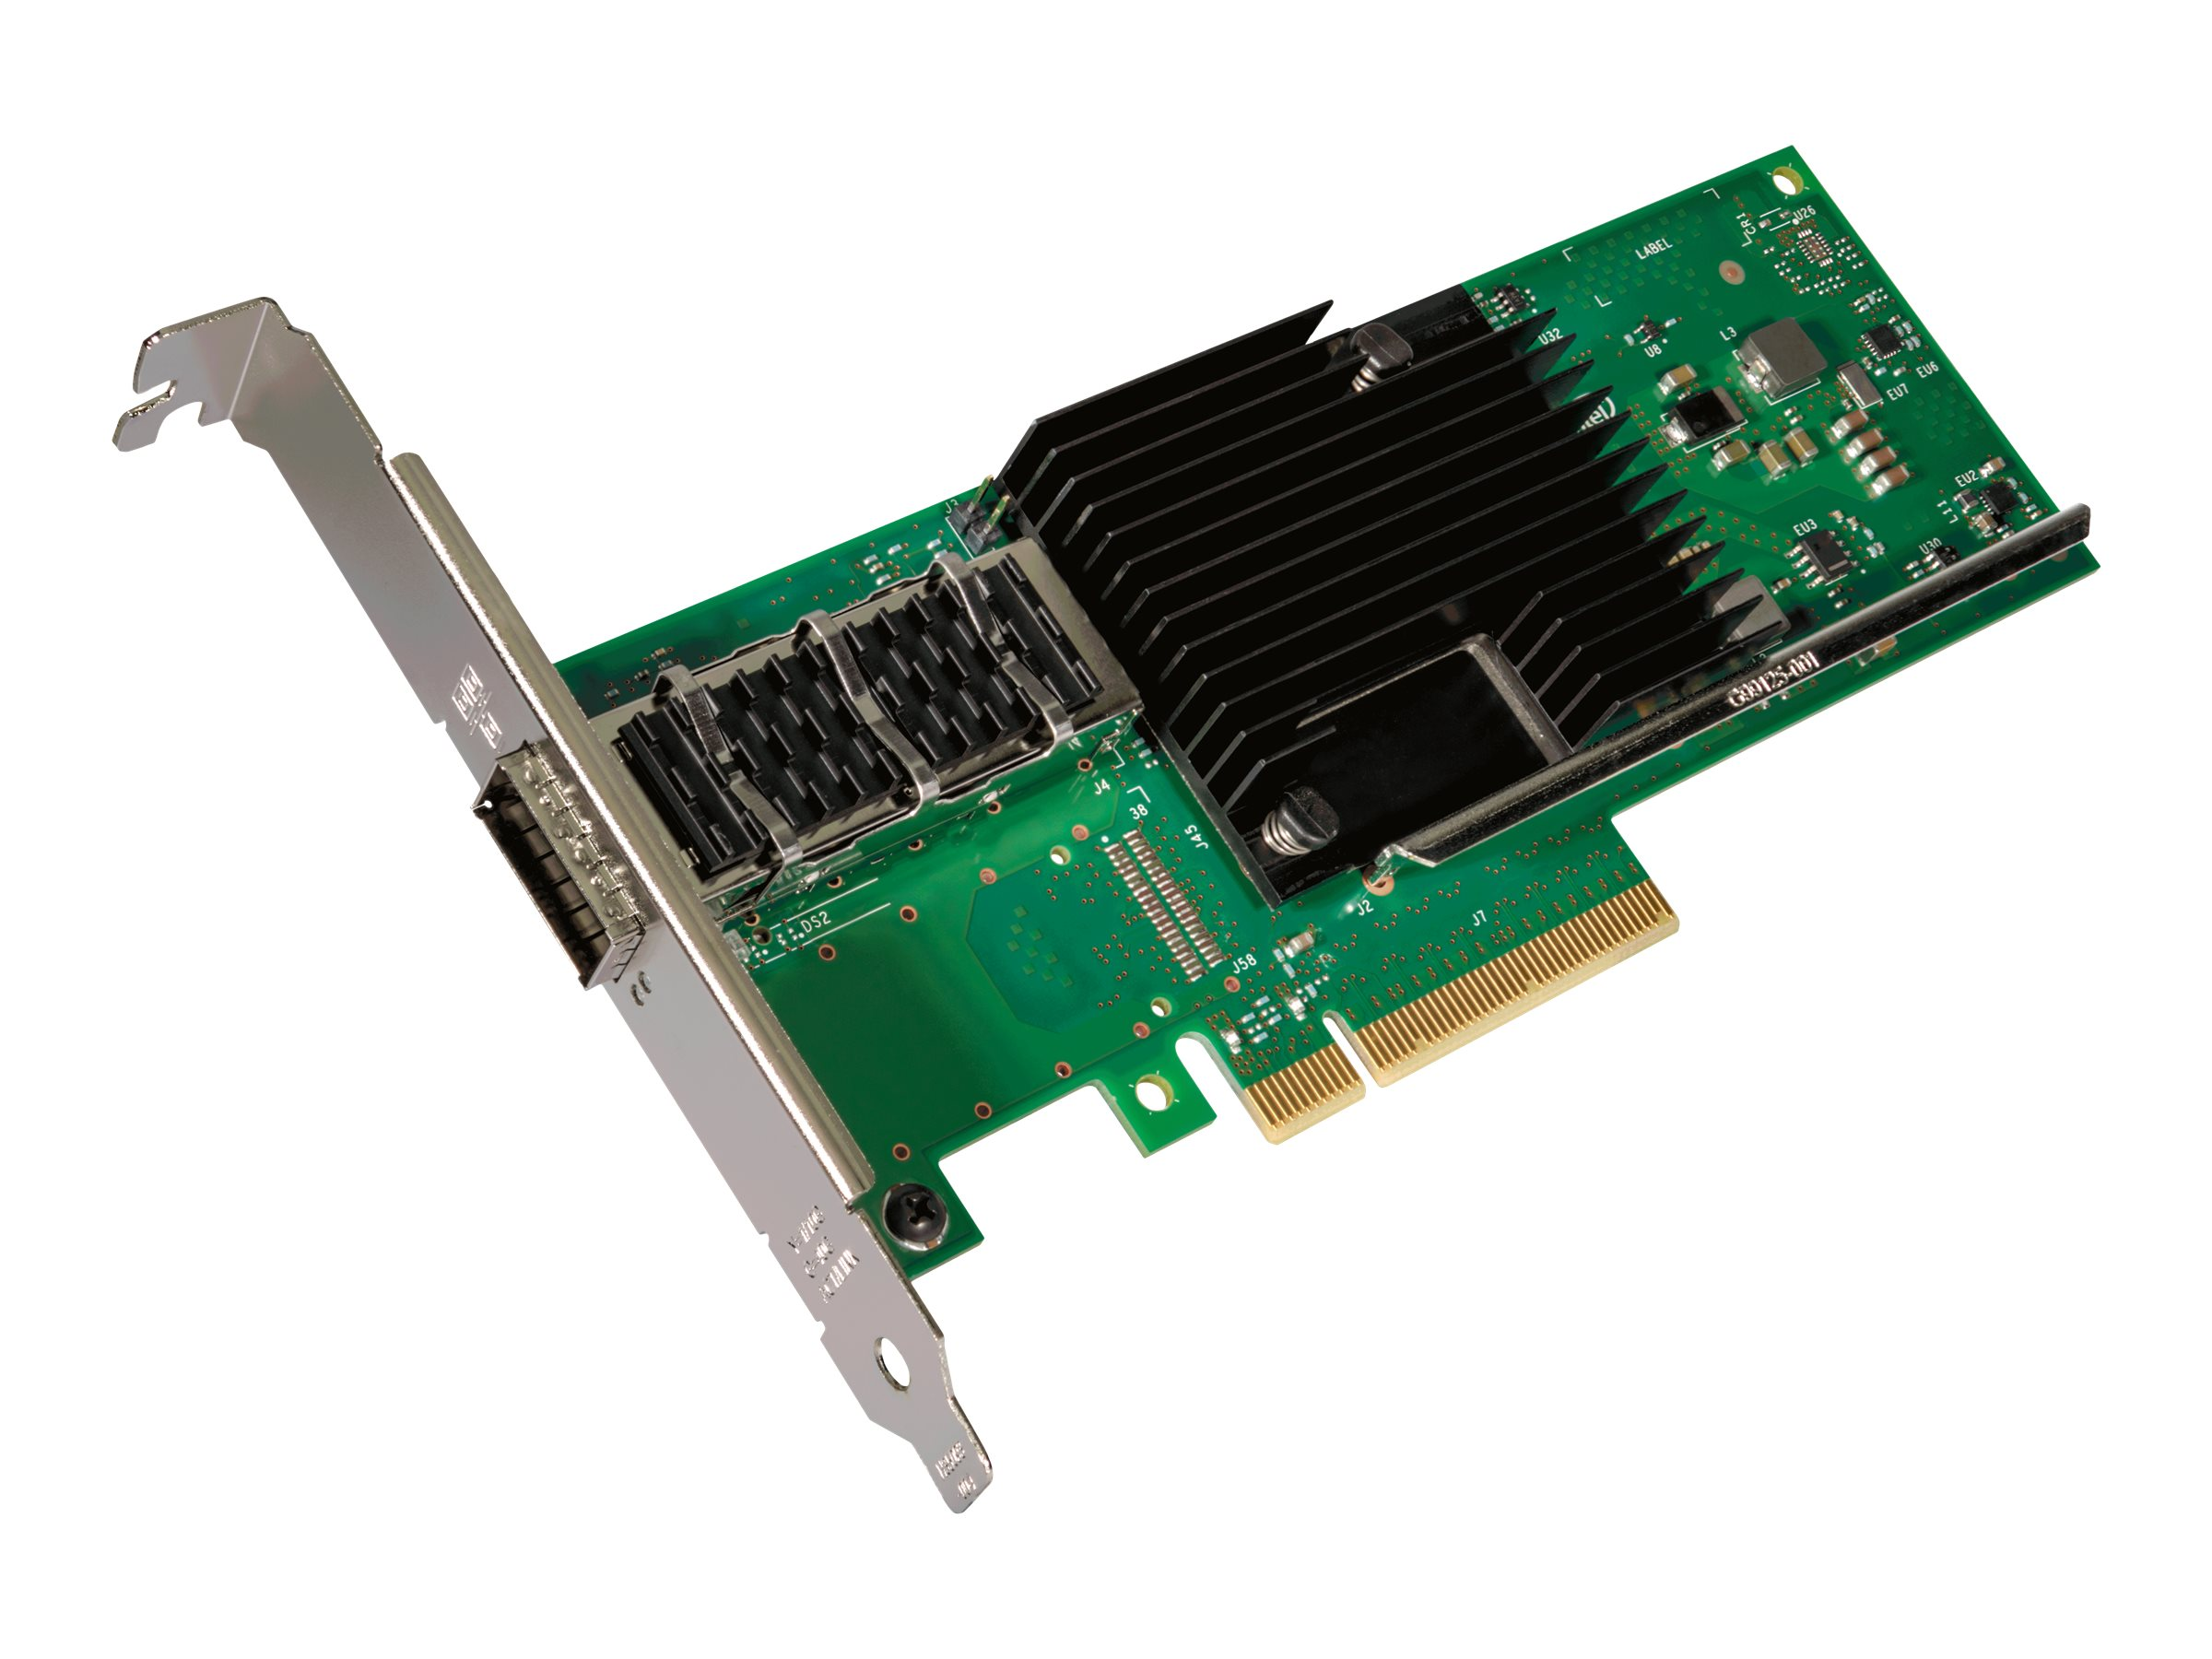 Intel Ethernet Converged Network Adapter XL710-QDA1 - Netzwerkadapter - PCIe 3.0 x8 Low-Profile - 40 Gigabit QSFP+ x 1